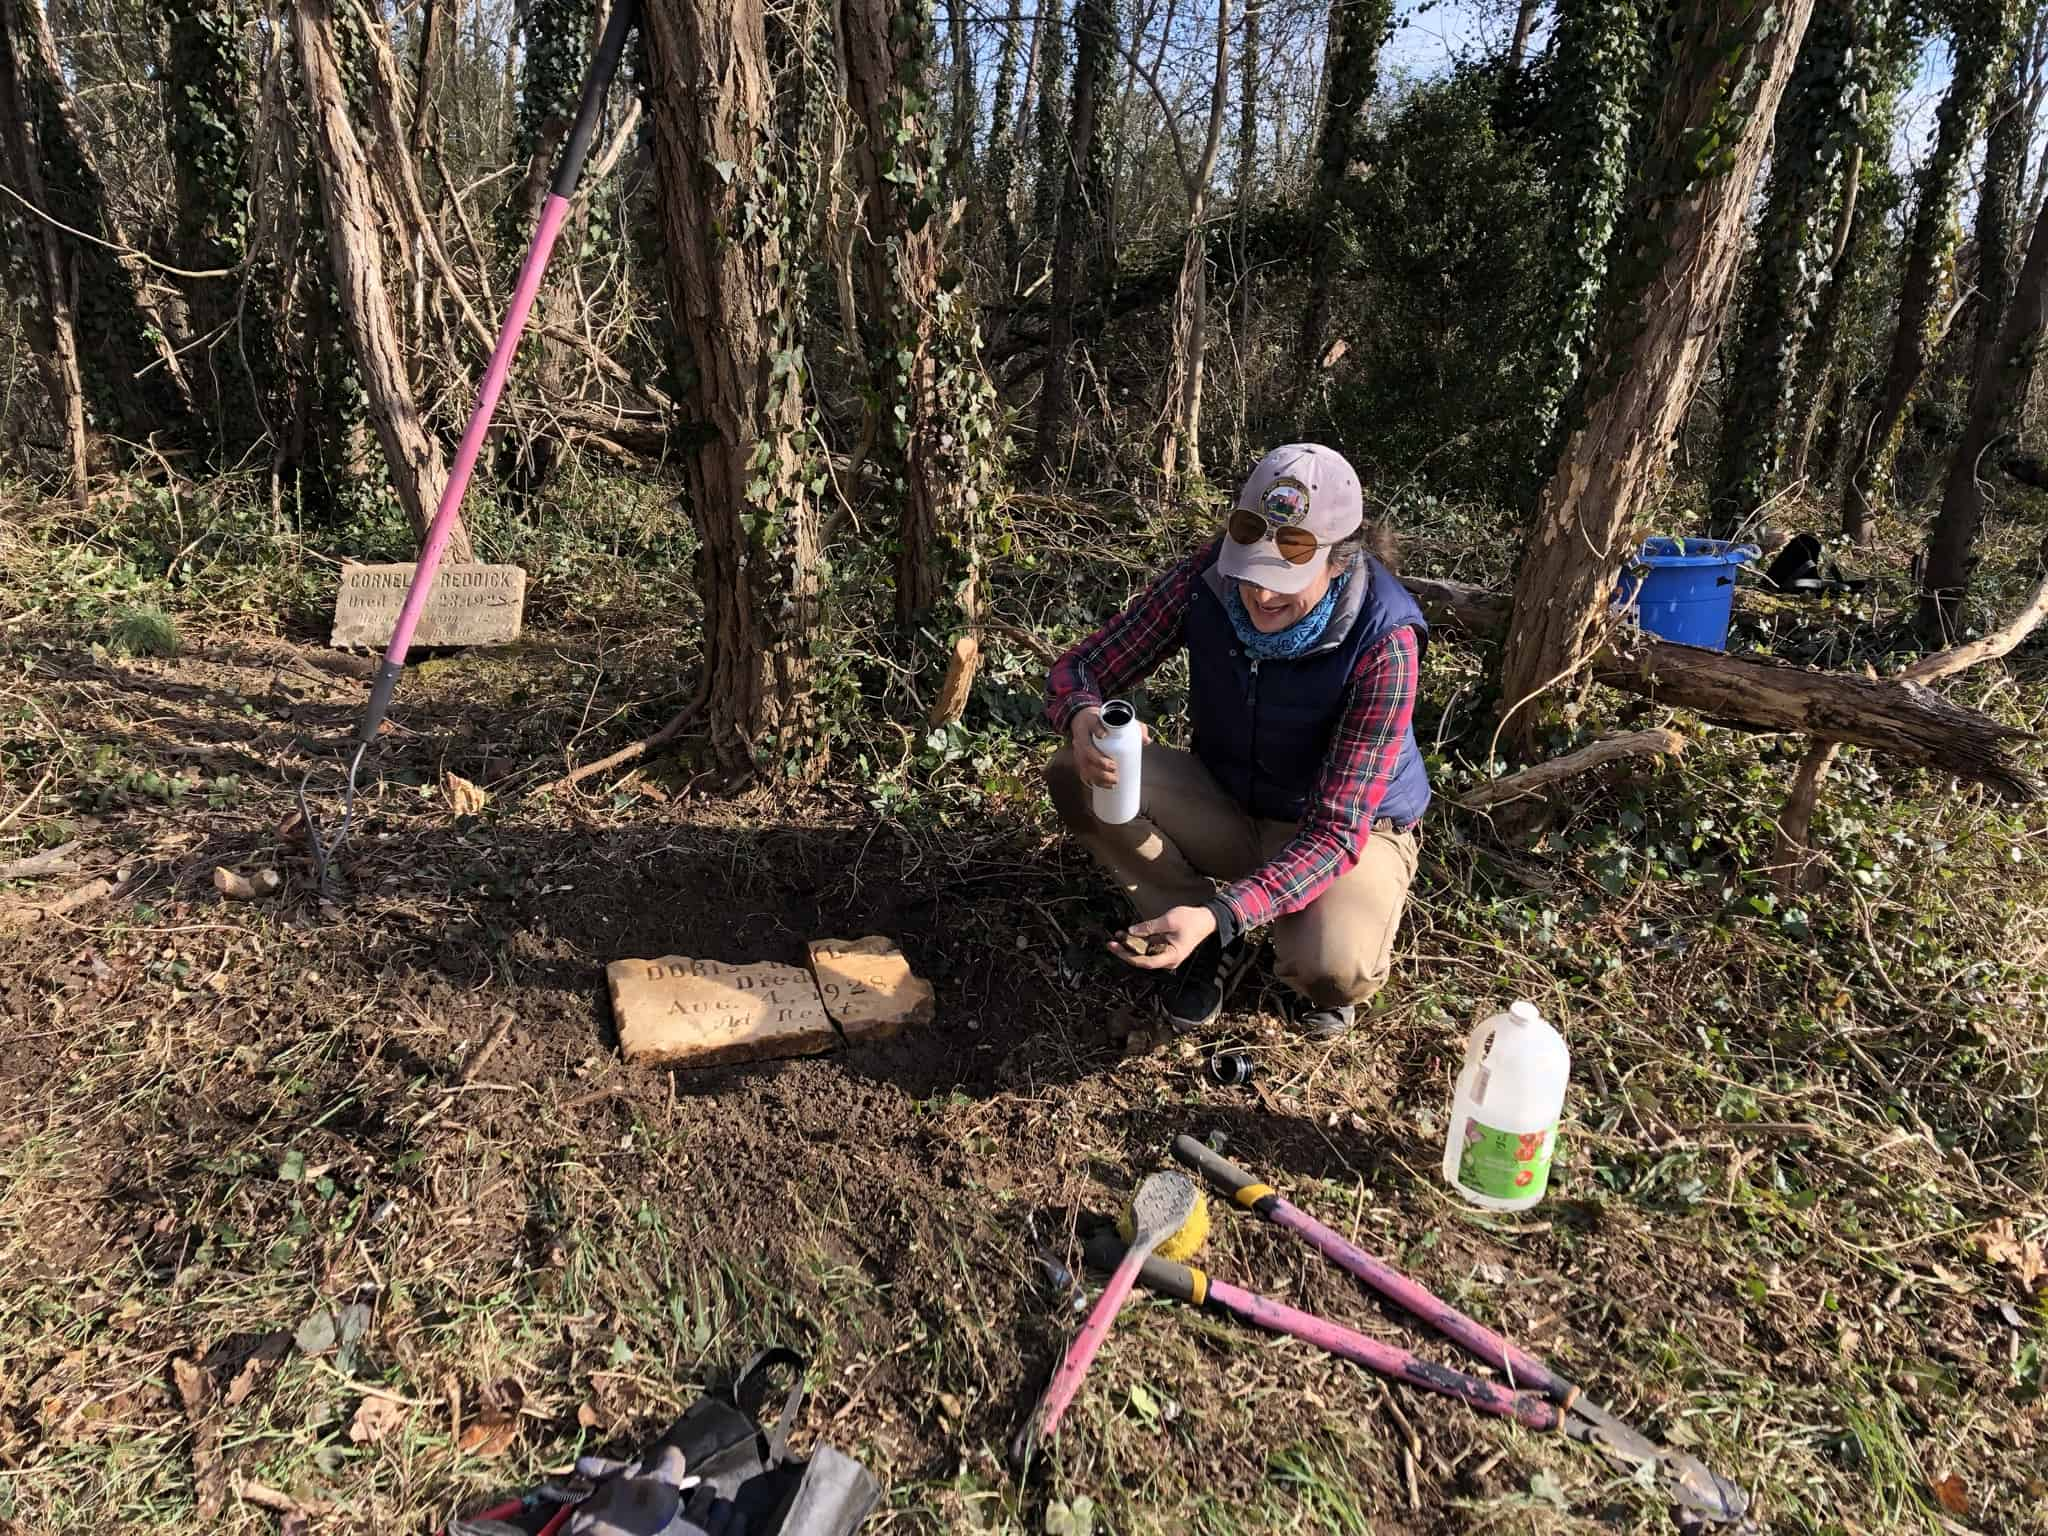 Volunteer tending a gravesite at Woodland Cemetery, a historic African American cemetery in Richmond, Virginia